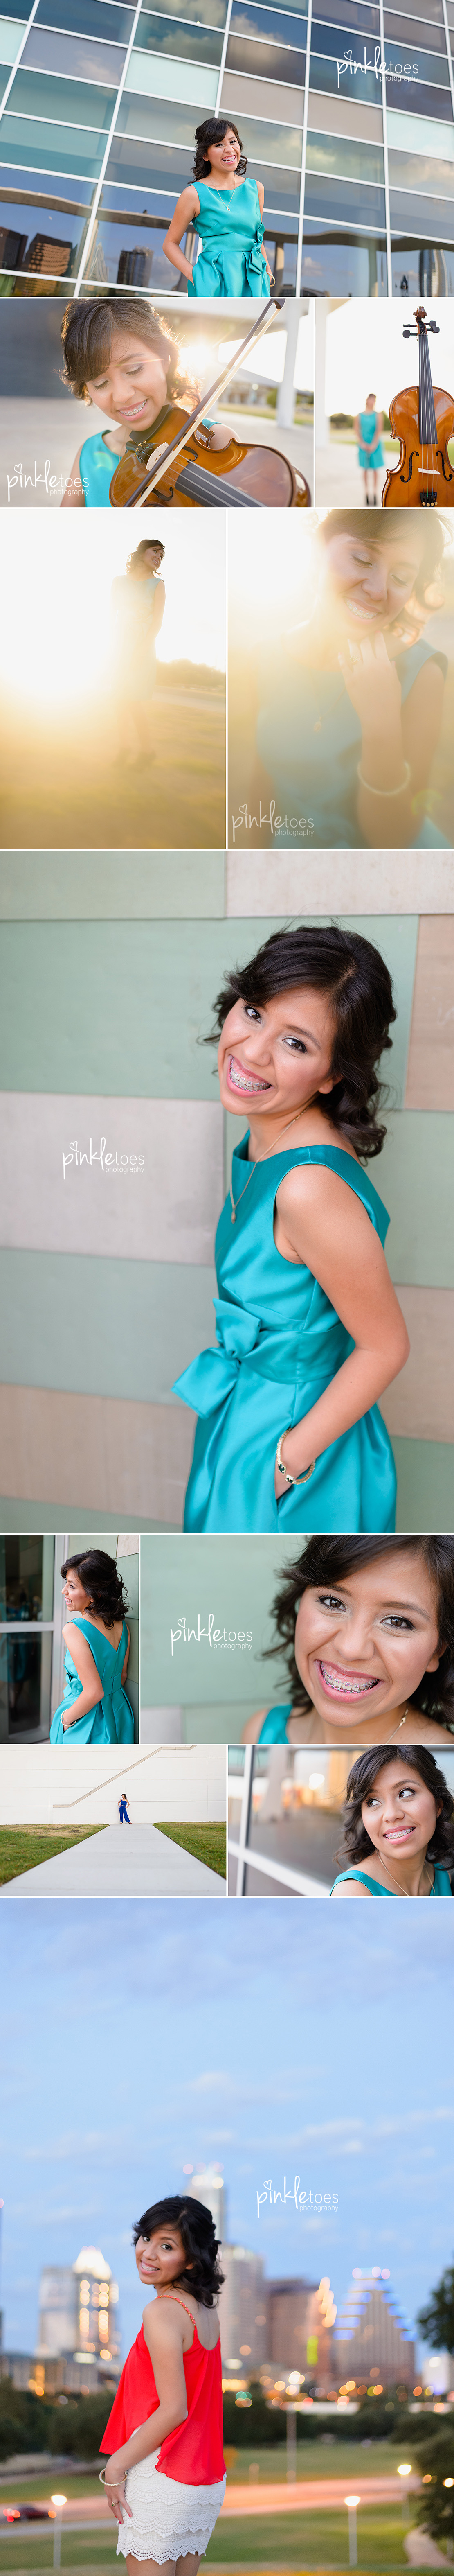 ad-pinkle-toes-senior-photos-downtown-austin-texas-class-of-2015